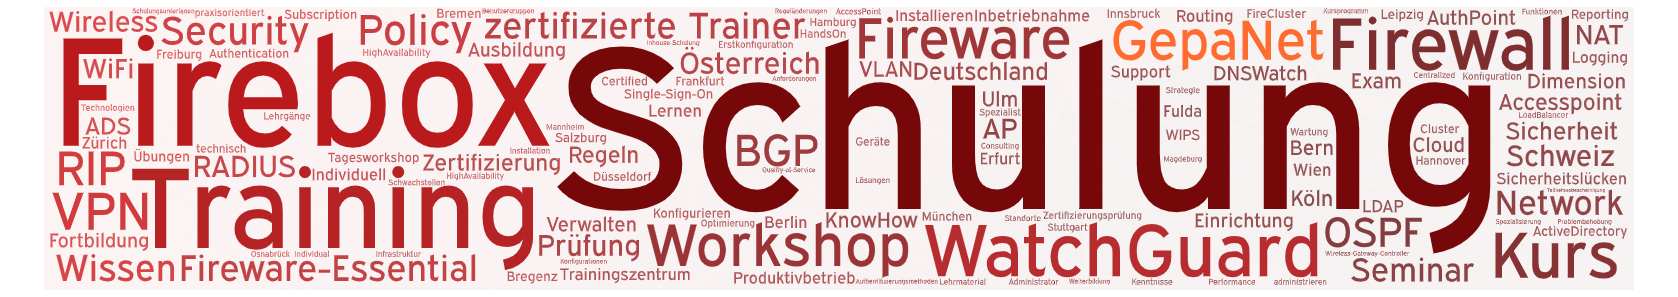 Workshop Schulung Training für Watchguard Firebox M und Firebox T Firewalls